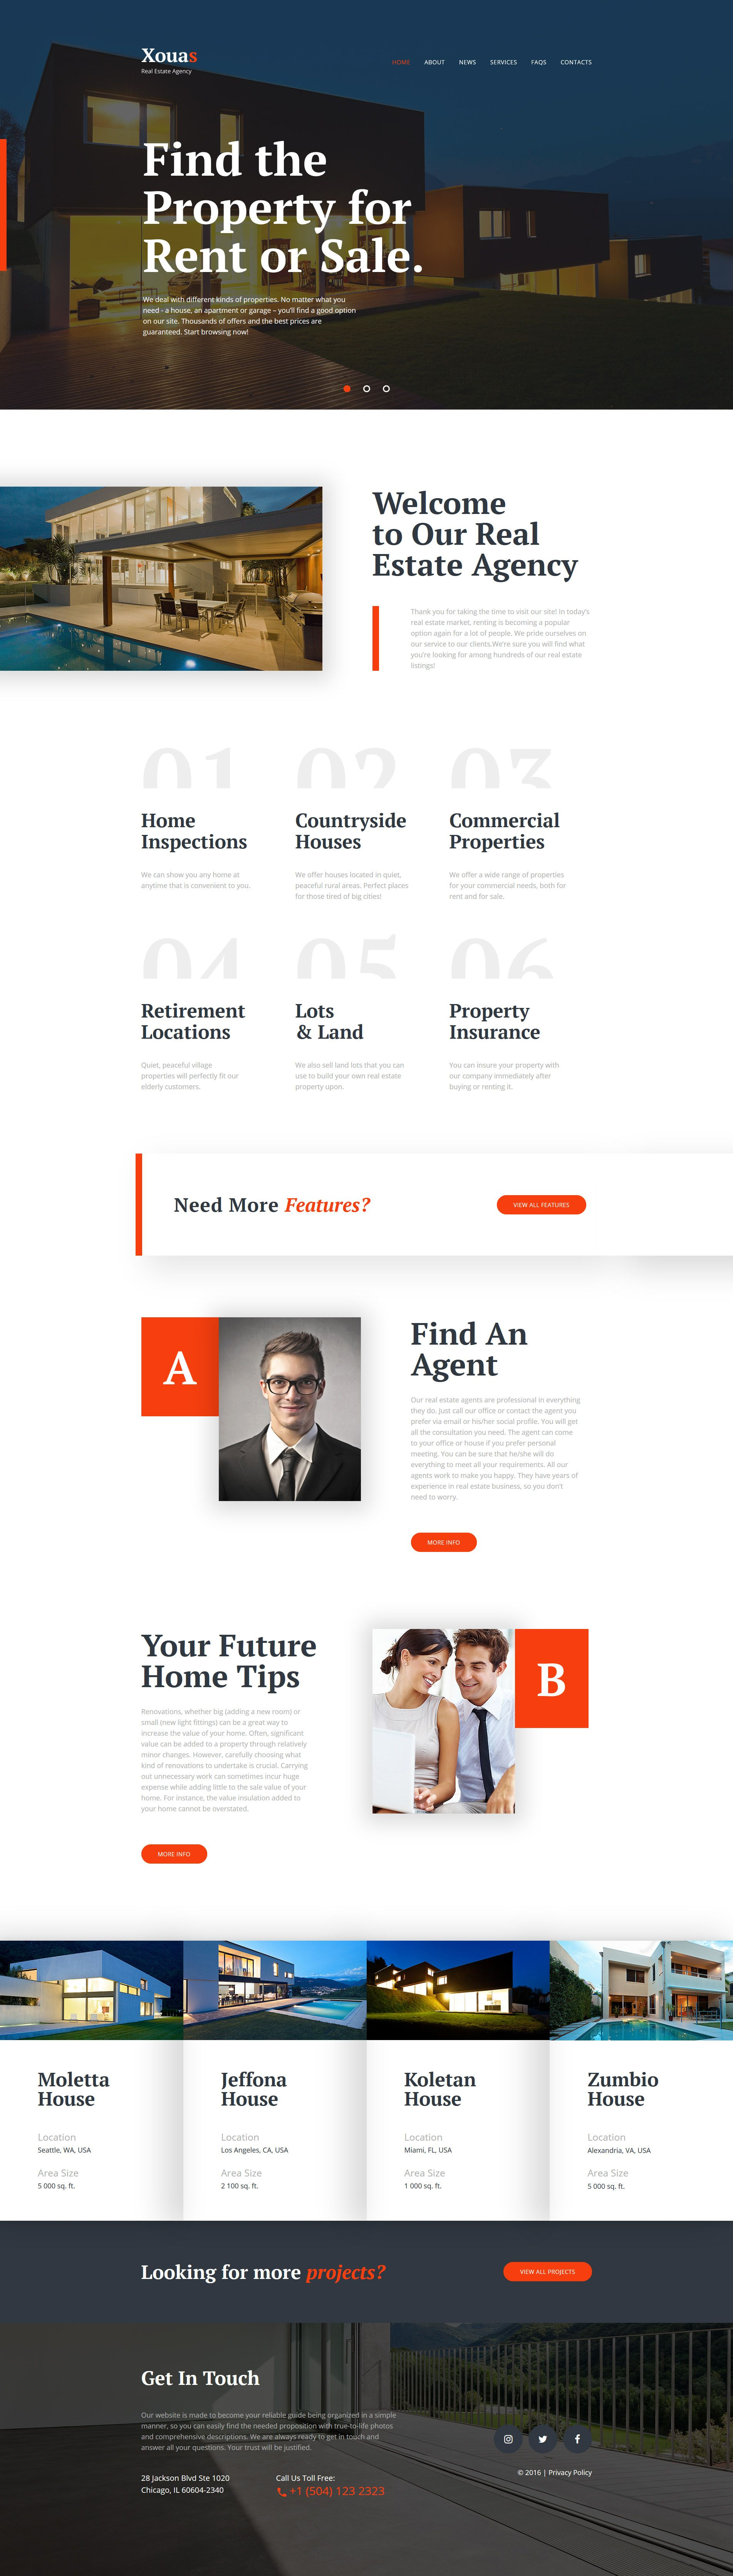 Xouas Real Estate Agency Responsive Website Template Website